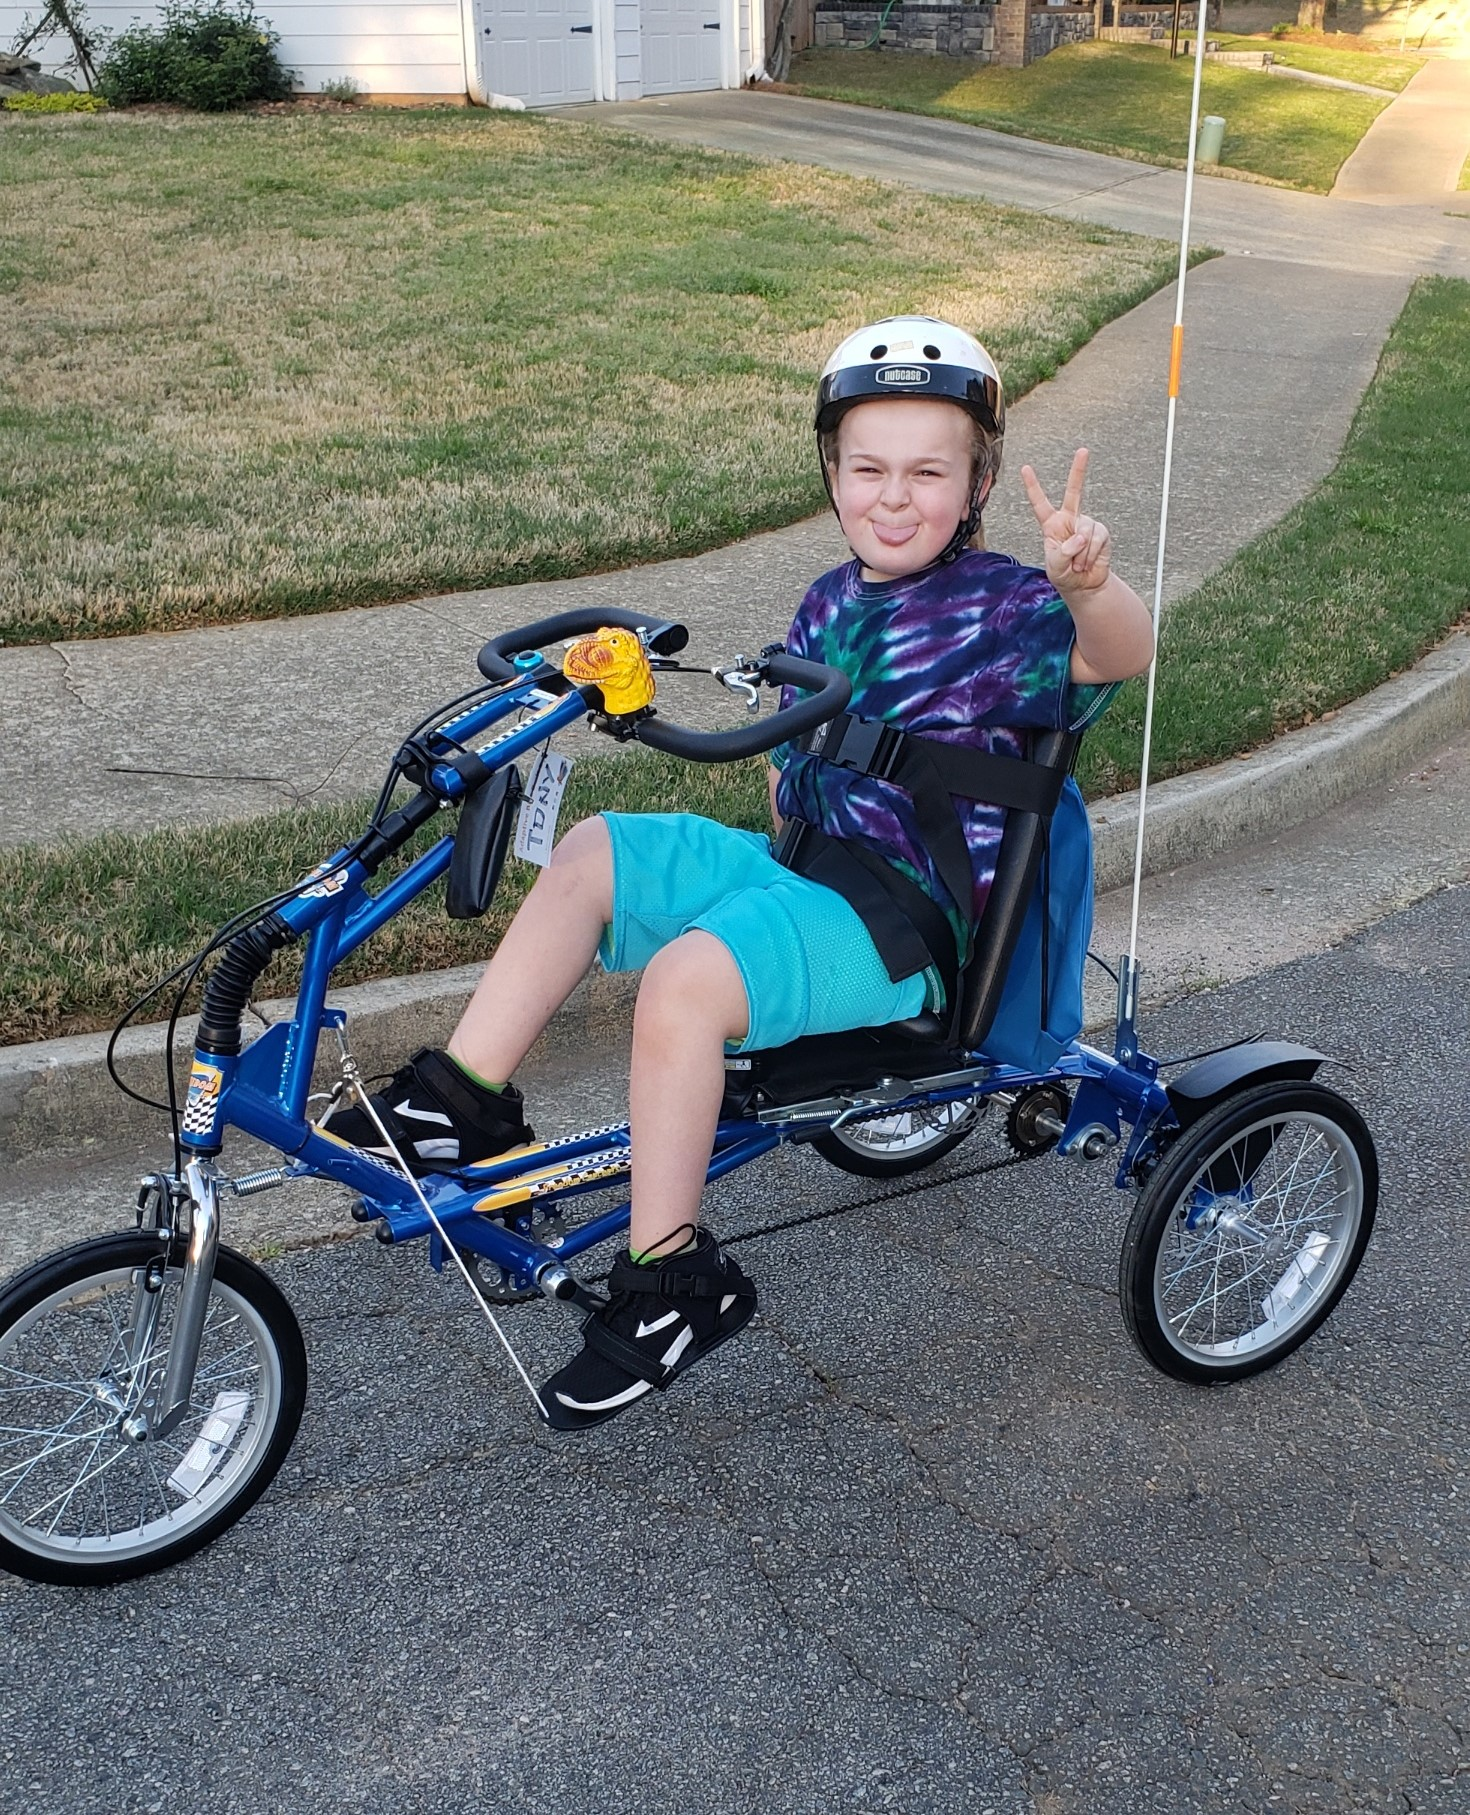 Ayden sitting on his adaptive bike making a peace sign with his hands.